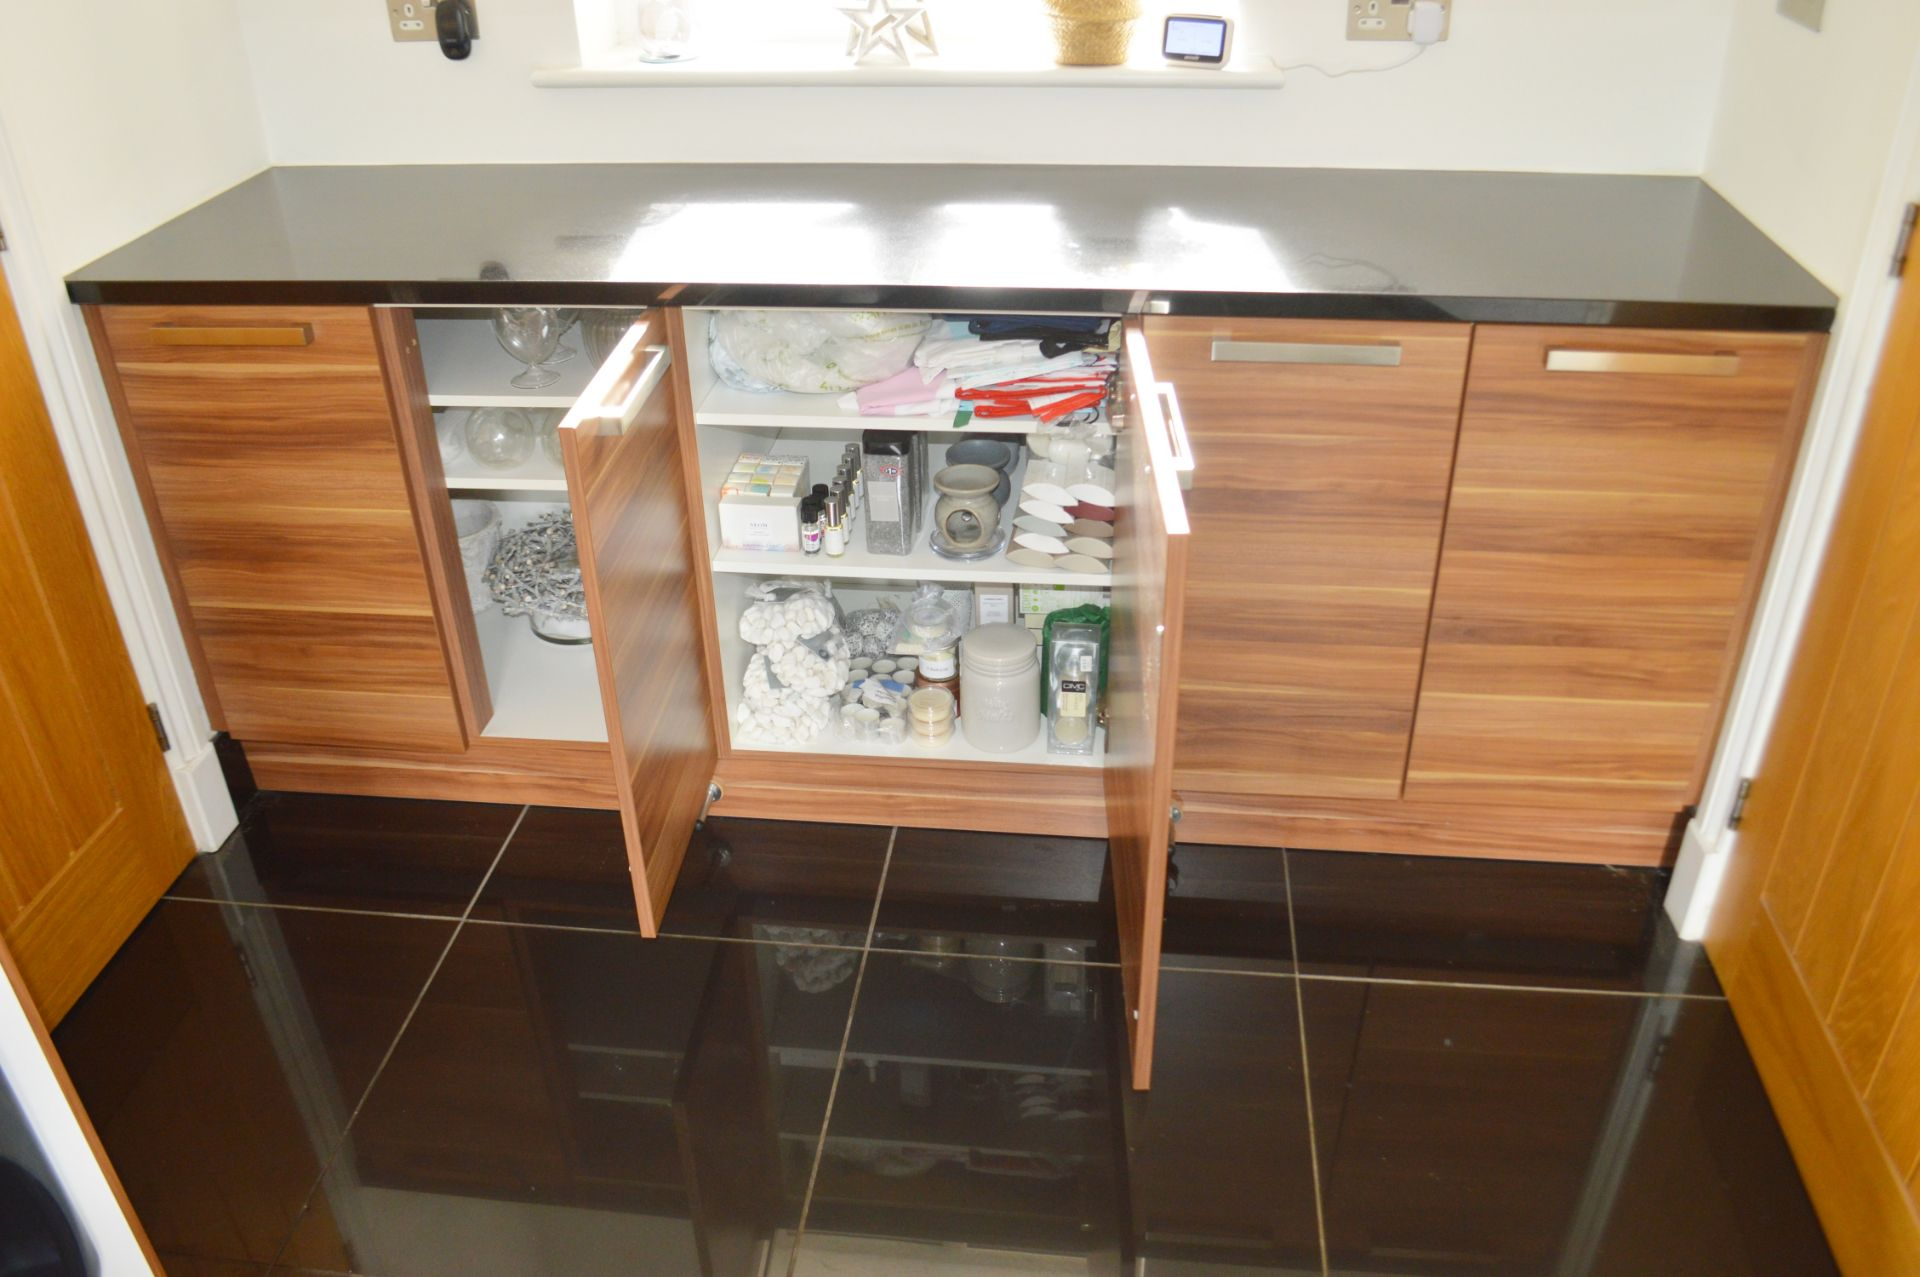 1 x Contemporary Bespoke Fitted Kitchen With Integrated Neff Branded Appliances, Quartz Worktops - Image 7 of 52